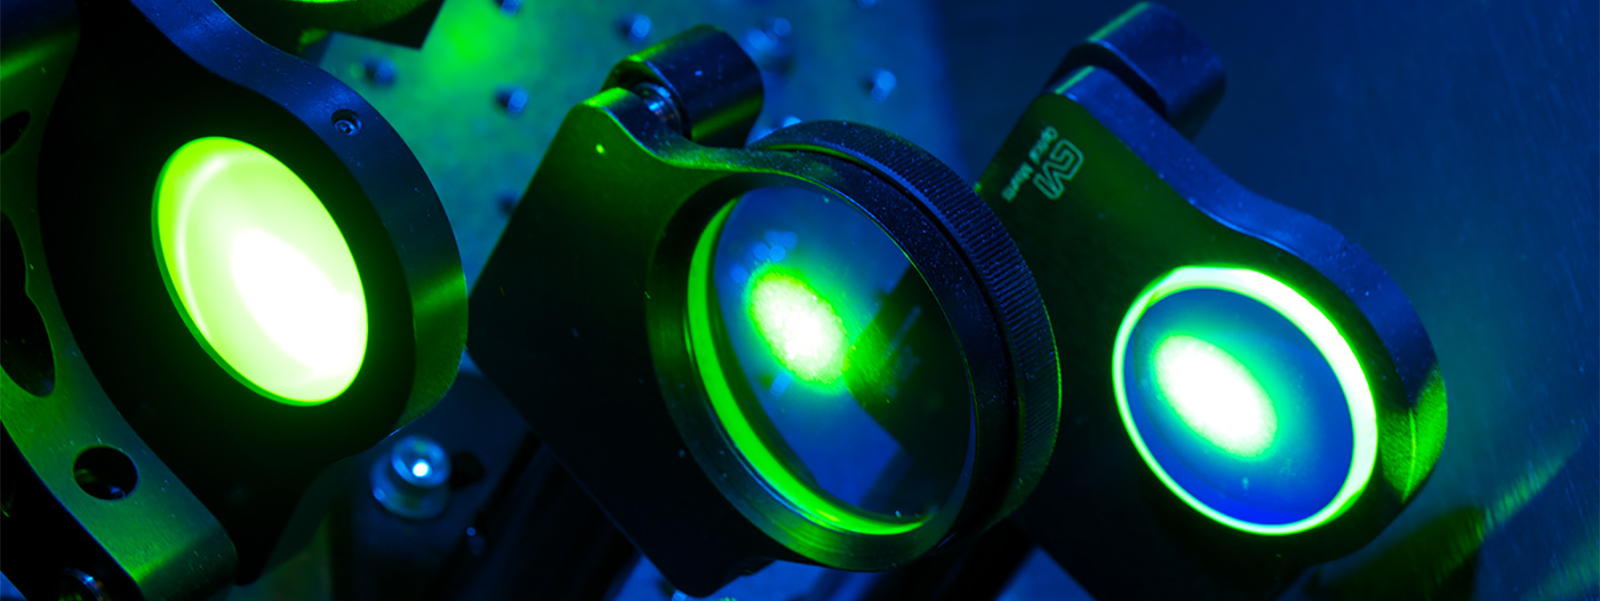 Lasers in a physics laboratory